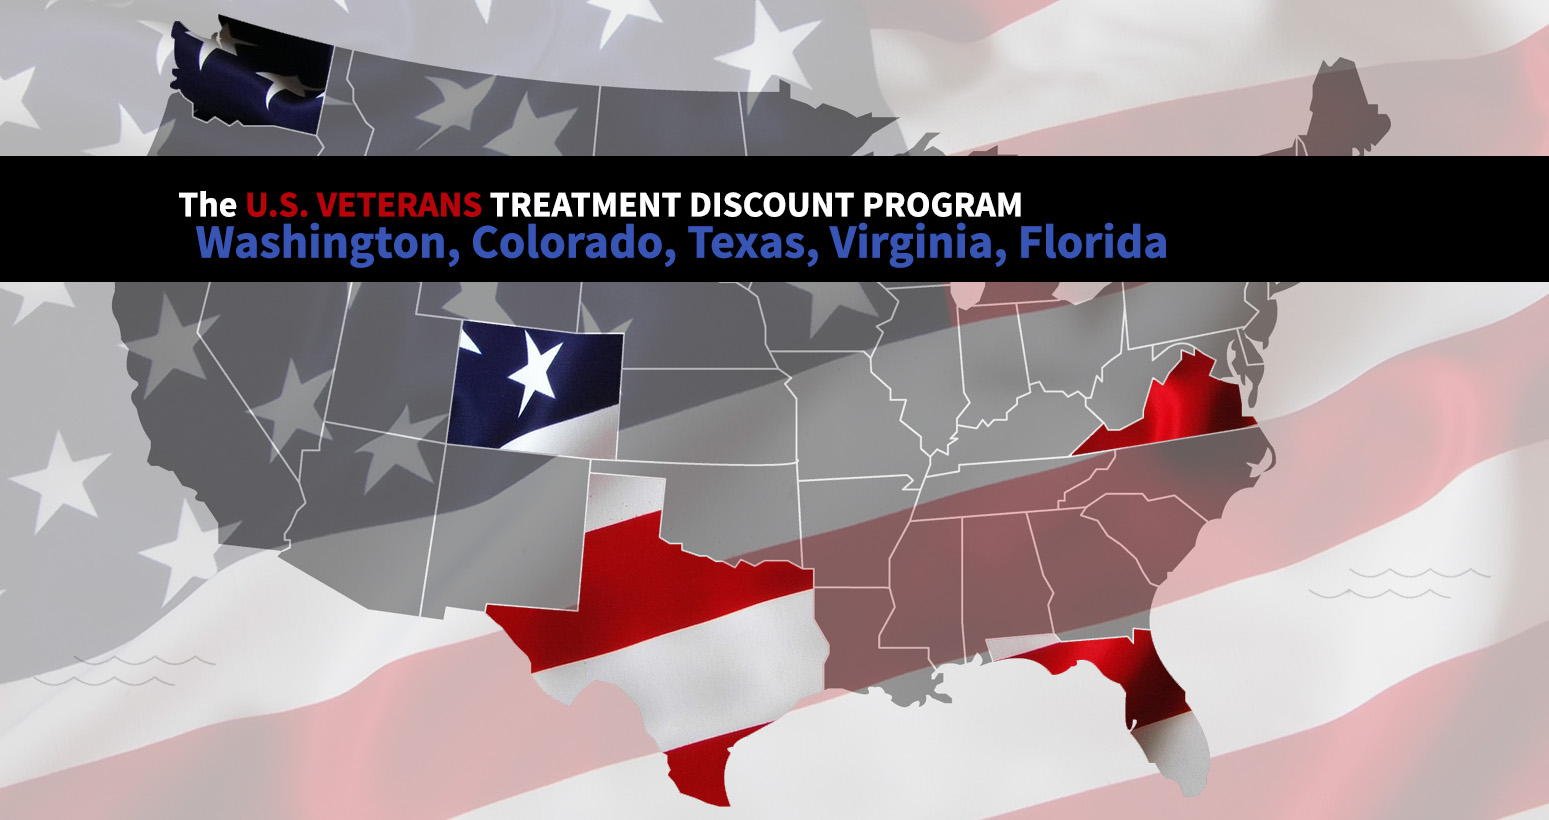 The national veterans treatment discount program is soon going to be offered in Washington state, Colorado, Texas, Virginia and Florida to provide FREE or discounted services to war-torn veterans for chronic pain and PTSD - used as a navigation button to the page detailing the program on TheBodyIsMind